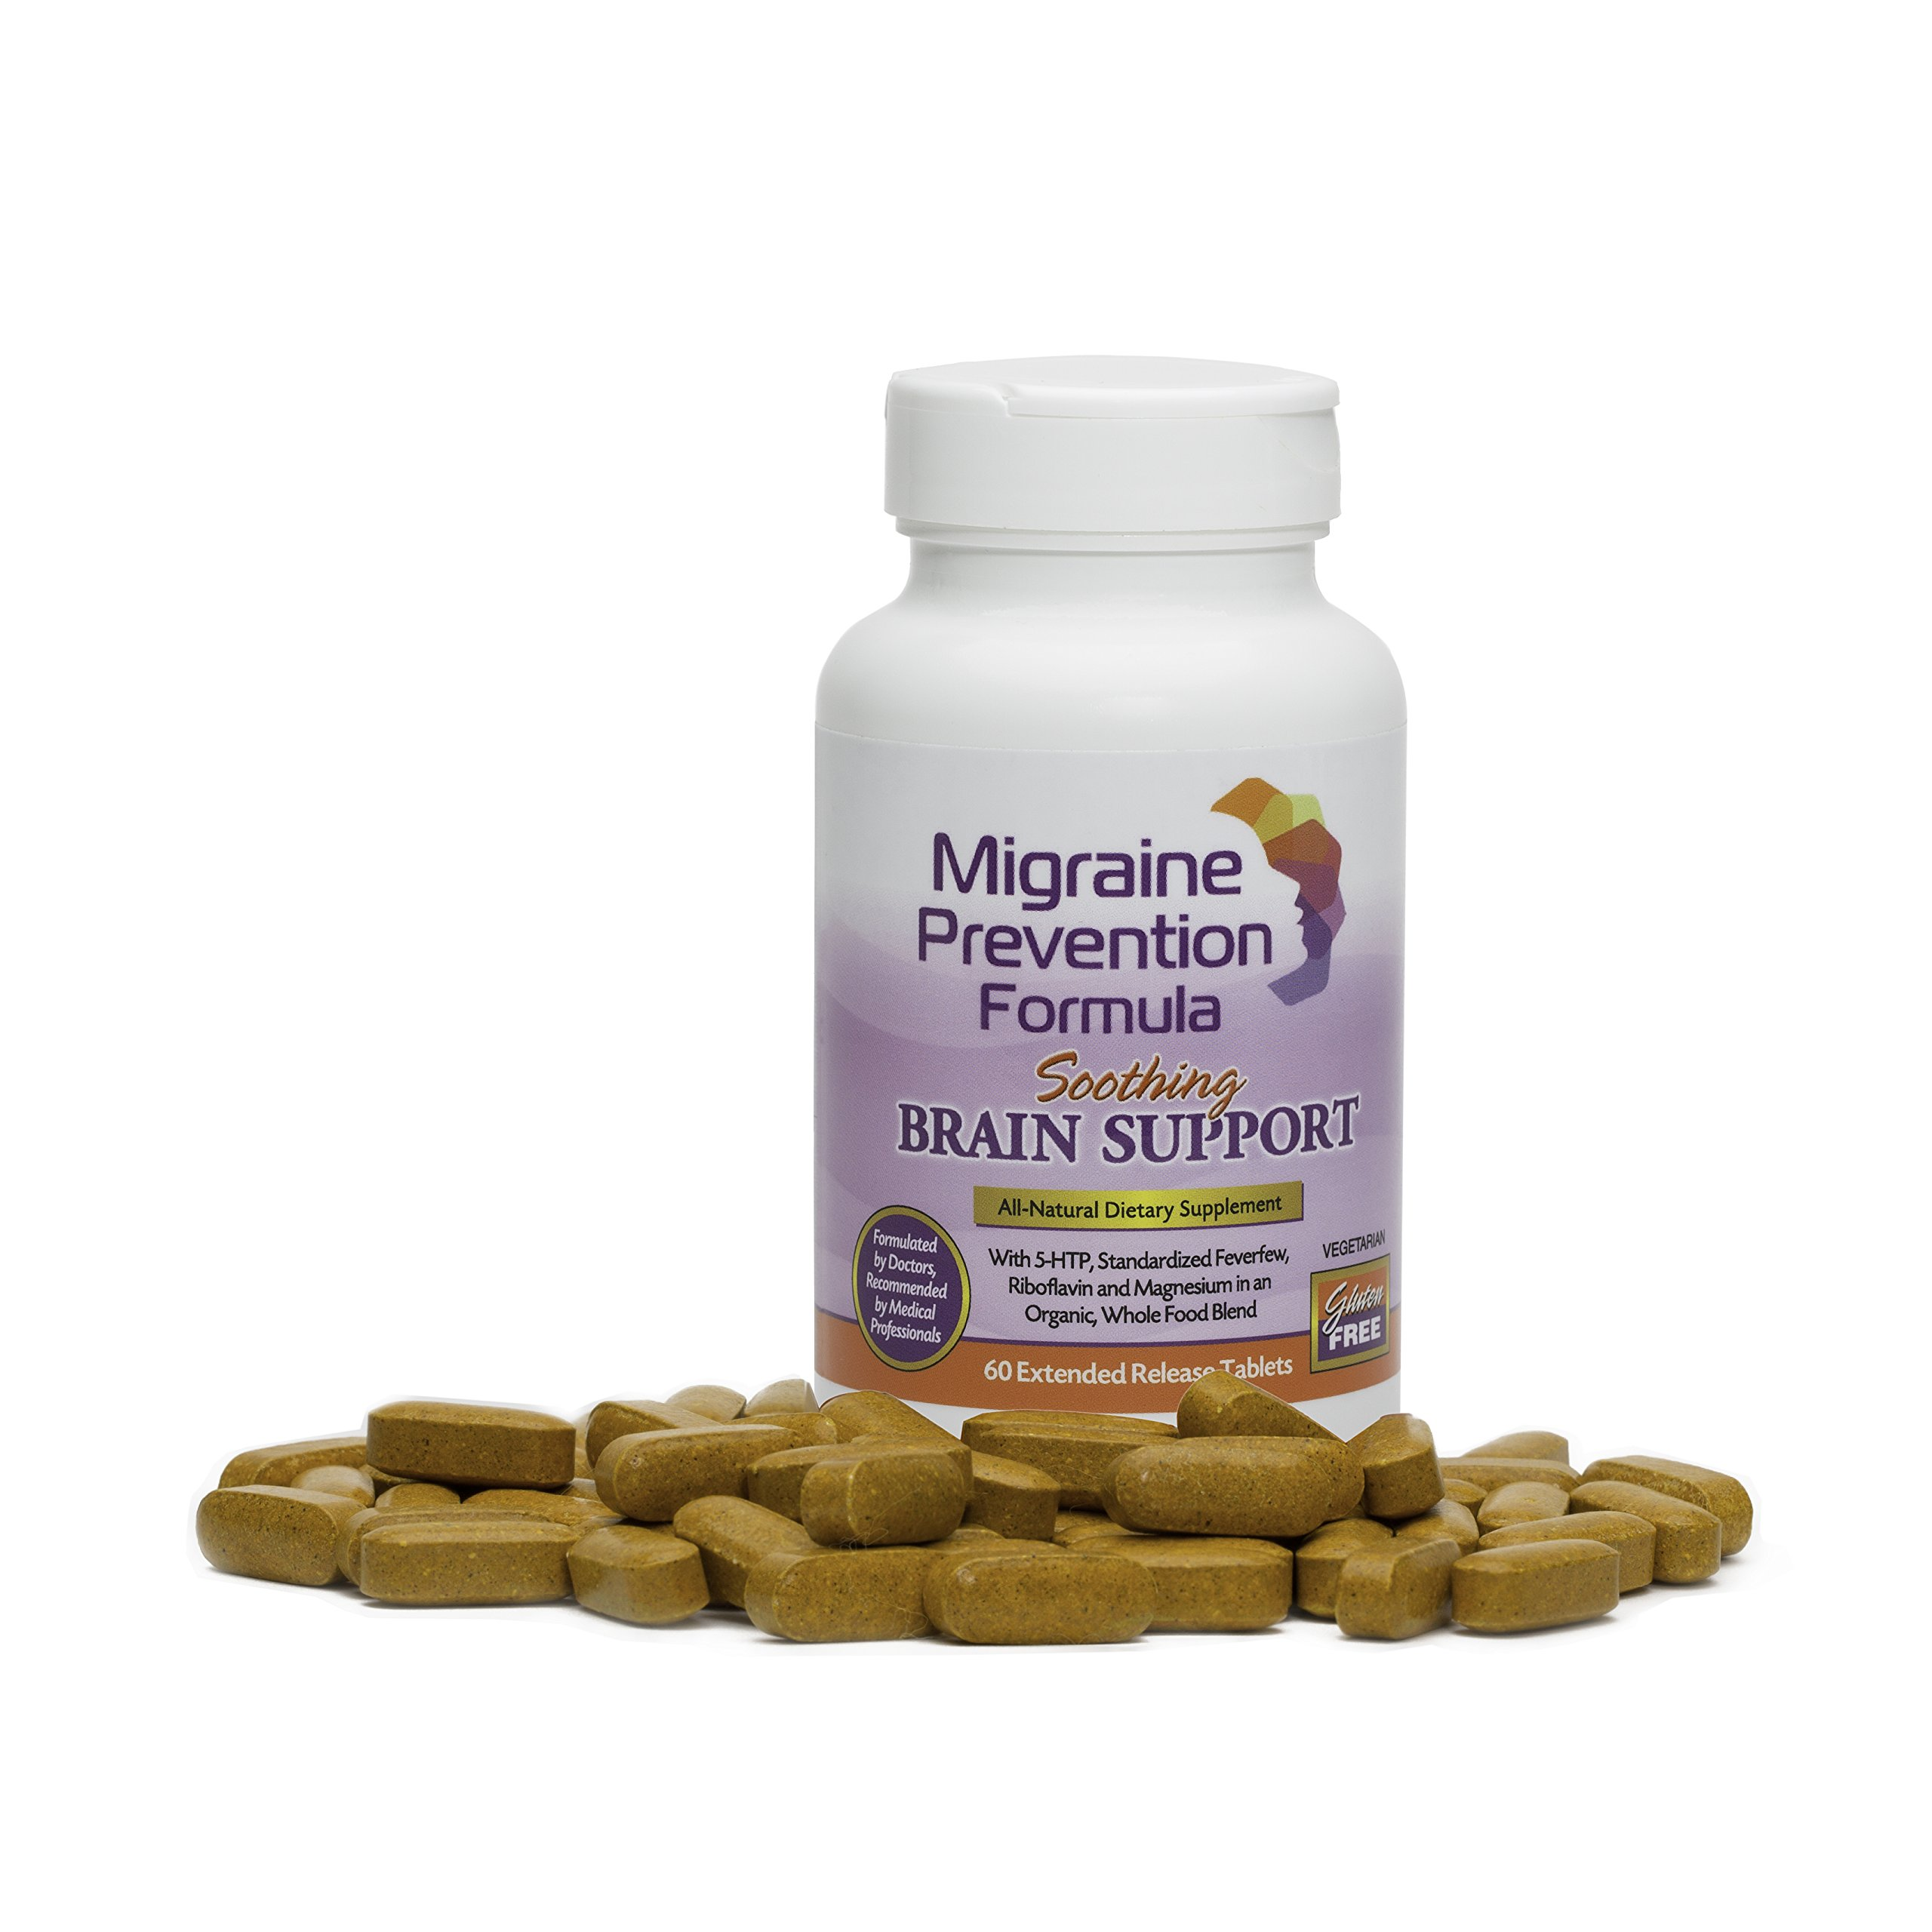 Dr. Knowles - Migraine Prevention Formula - 60 - Caplets - Headache Treatment and Relief - Prevent Migraines While You Treat by Free Shipping available! - Dr. Andrew Knowles - Anesthesiologist, Pain Management Specialist, treat / prevent migraines and episodic / chronic headaches